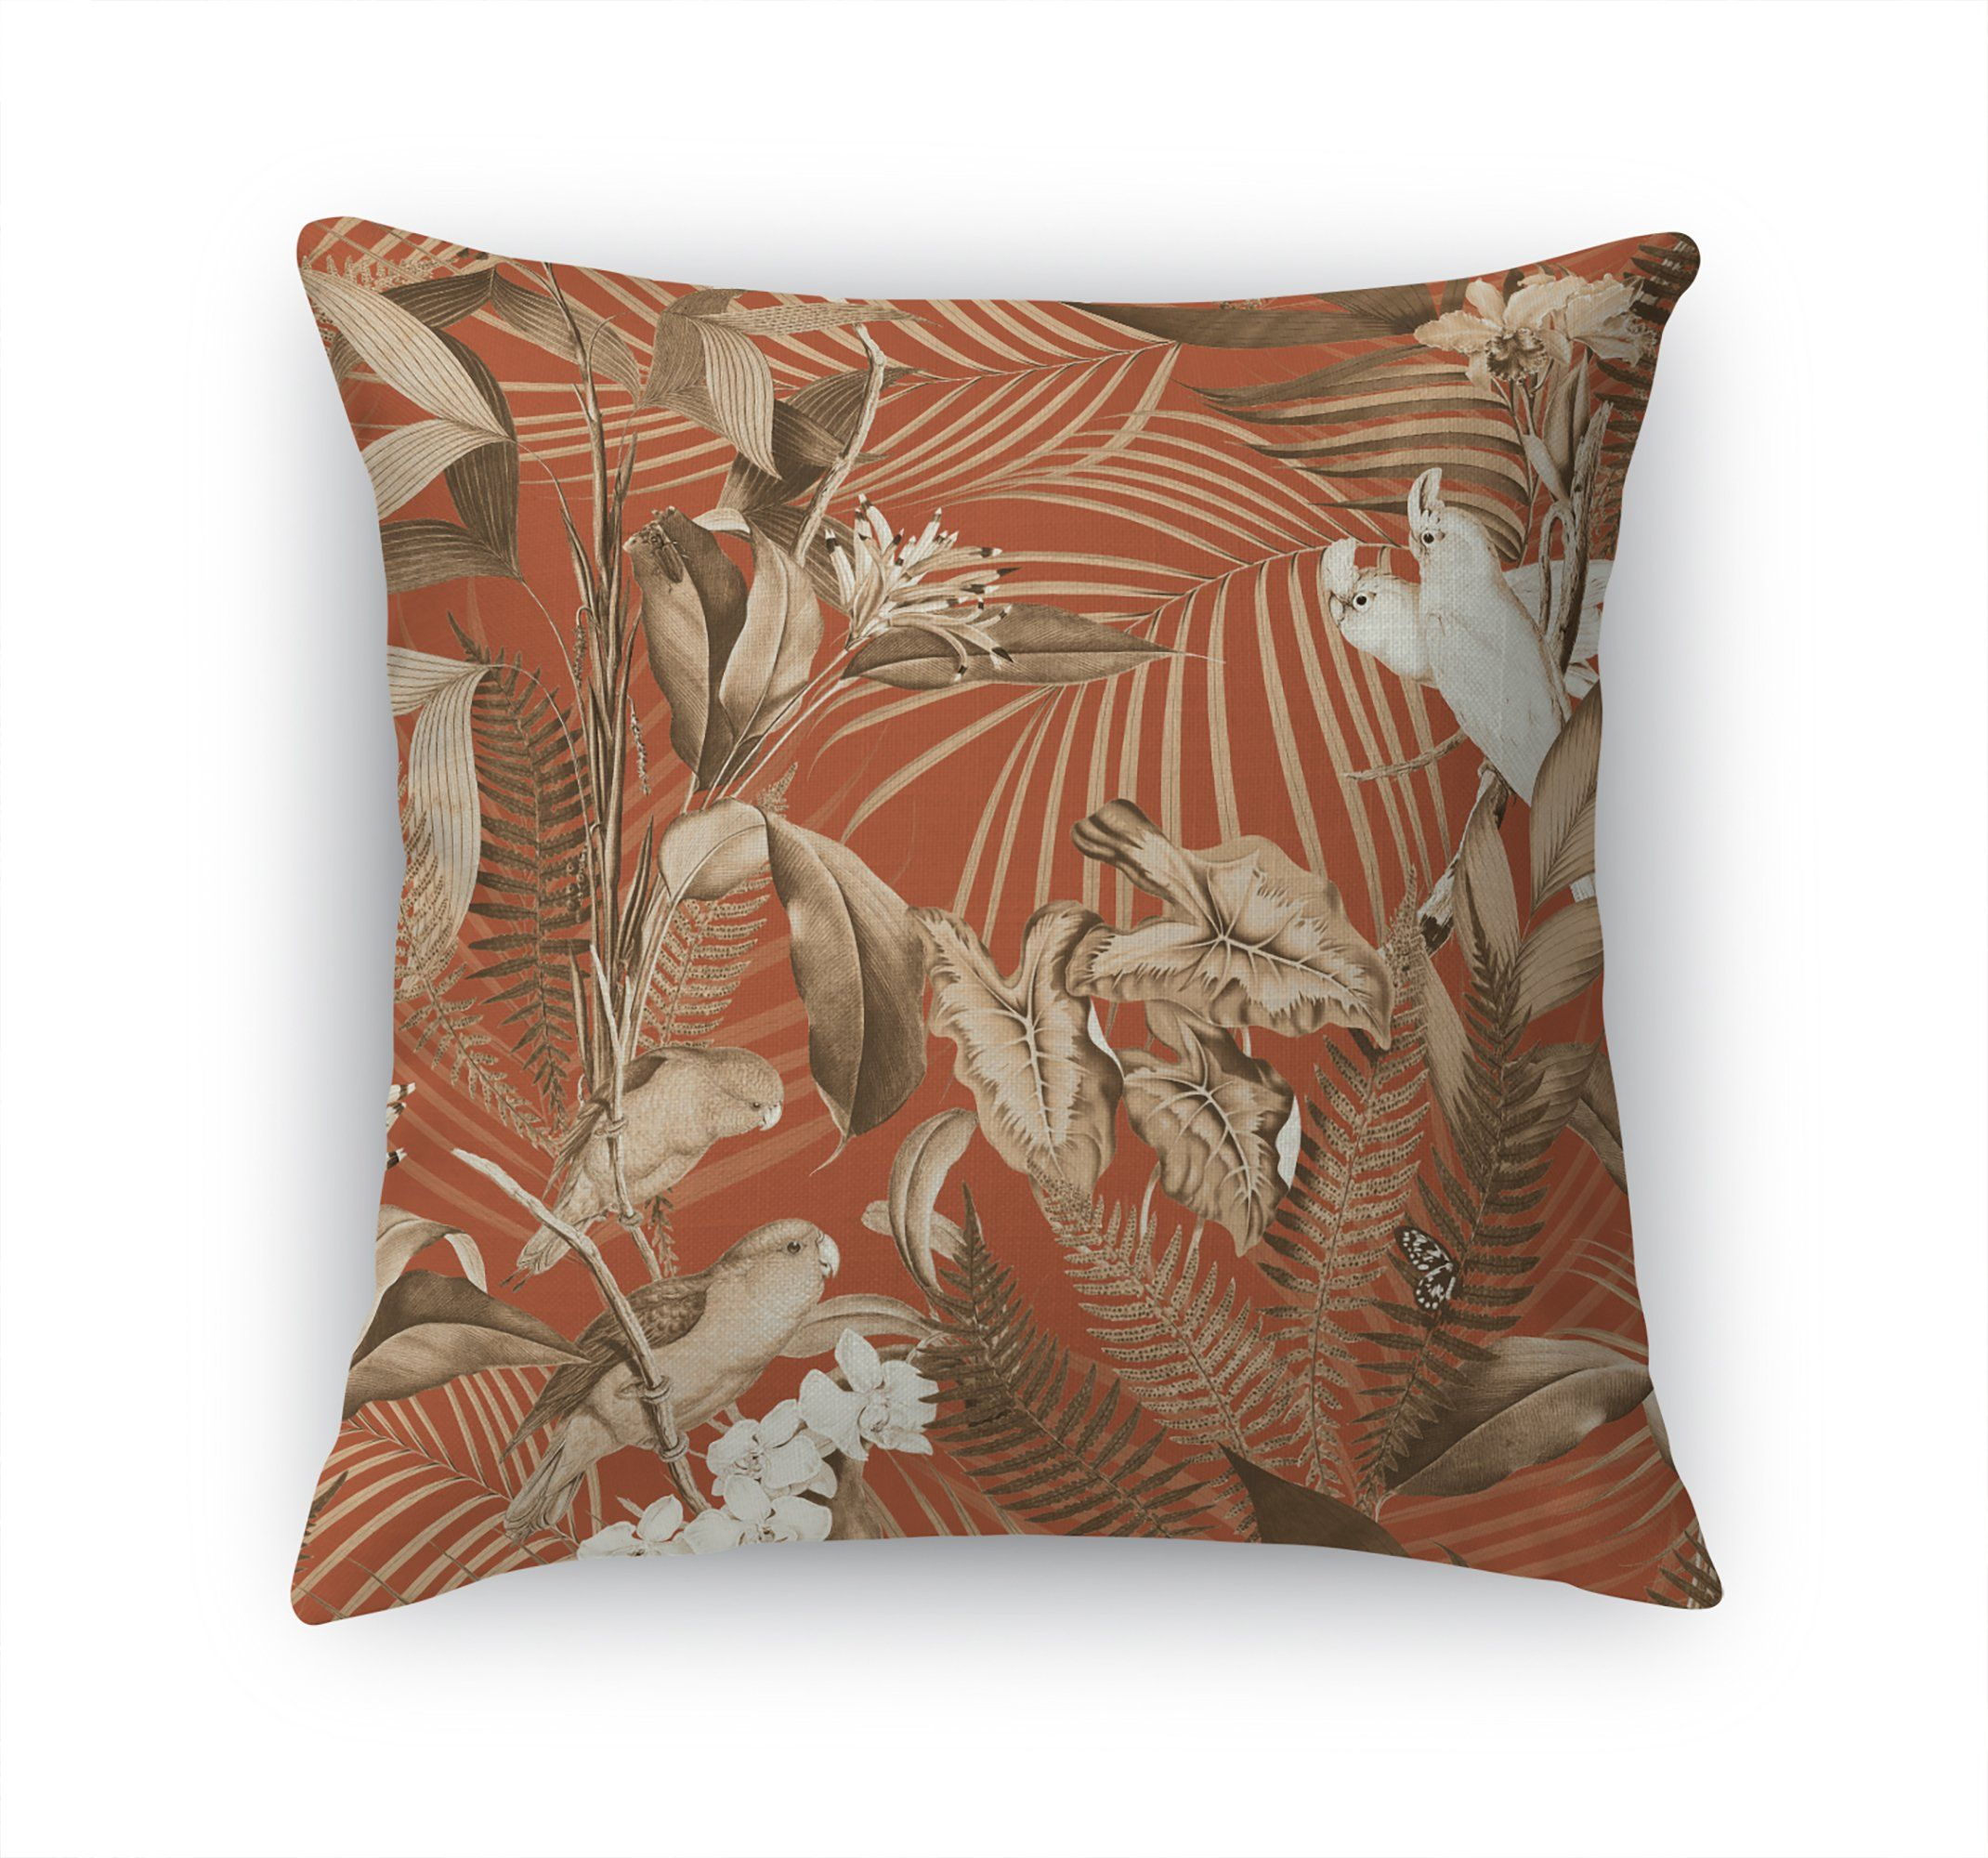 TROPICAL JUNGLE DARK CORAL Accent Pillow By Marina Gutierrez – 18in x 18in